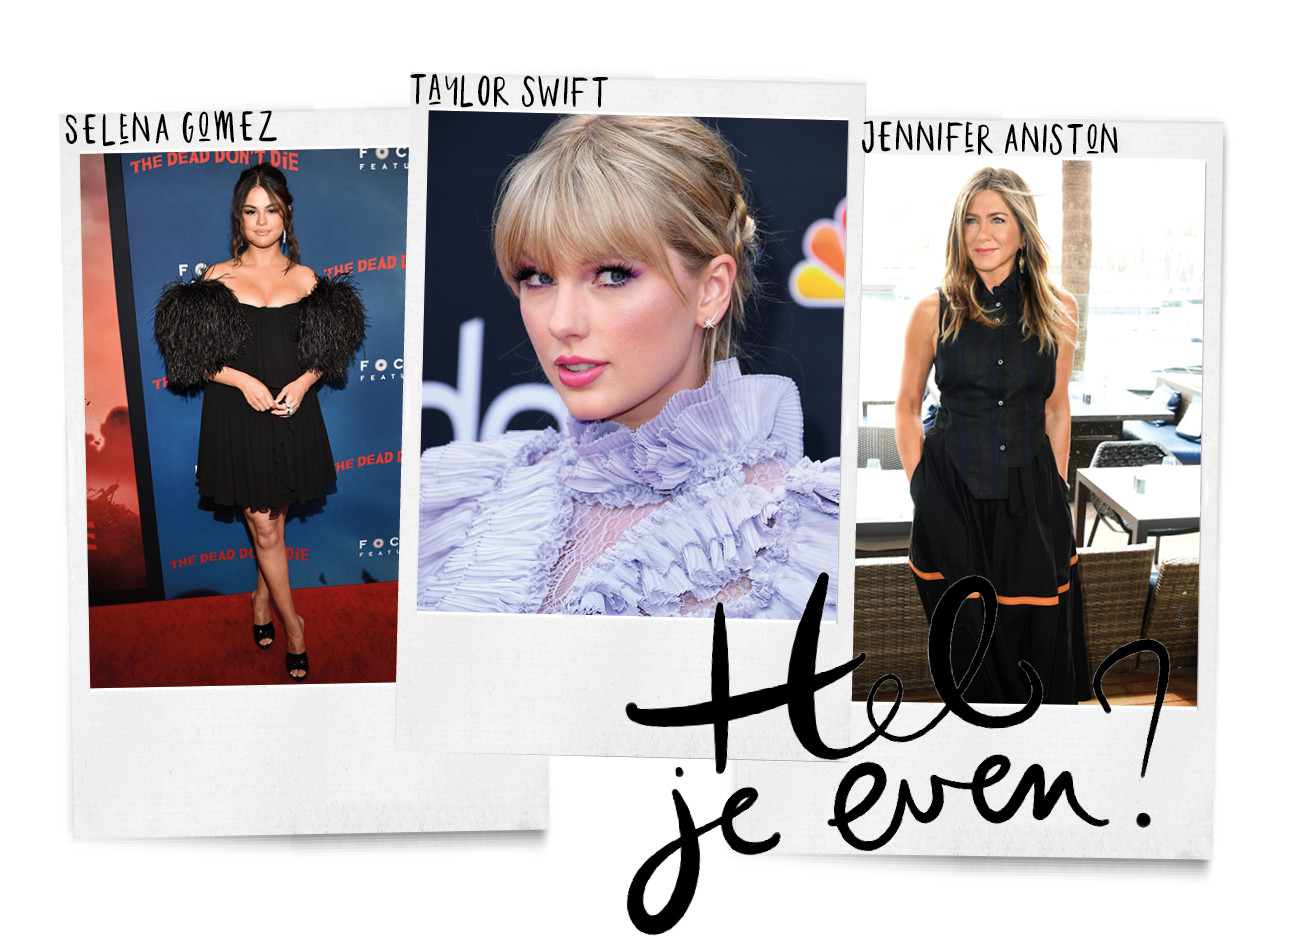 beelden van taylor swift, selena gomez en jennifer aniston